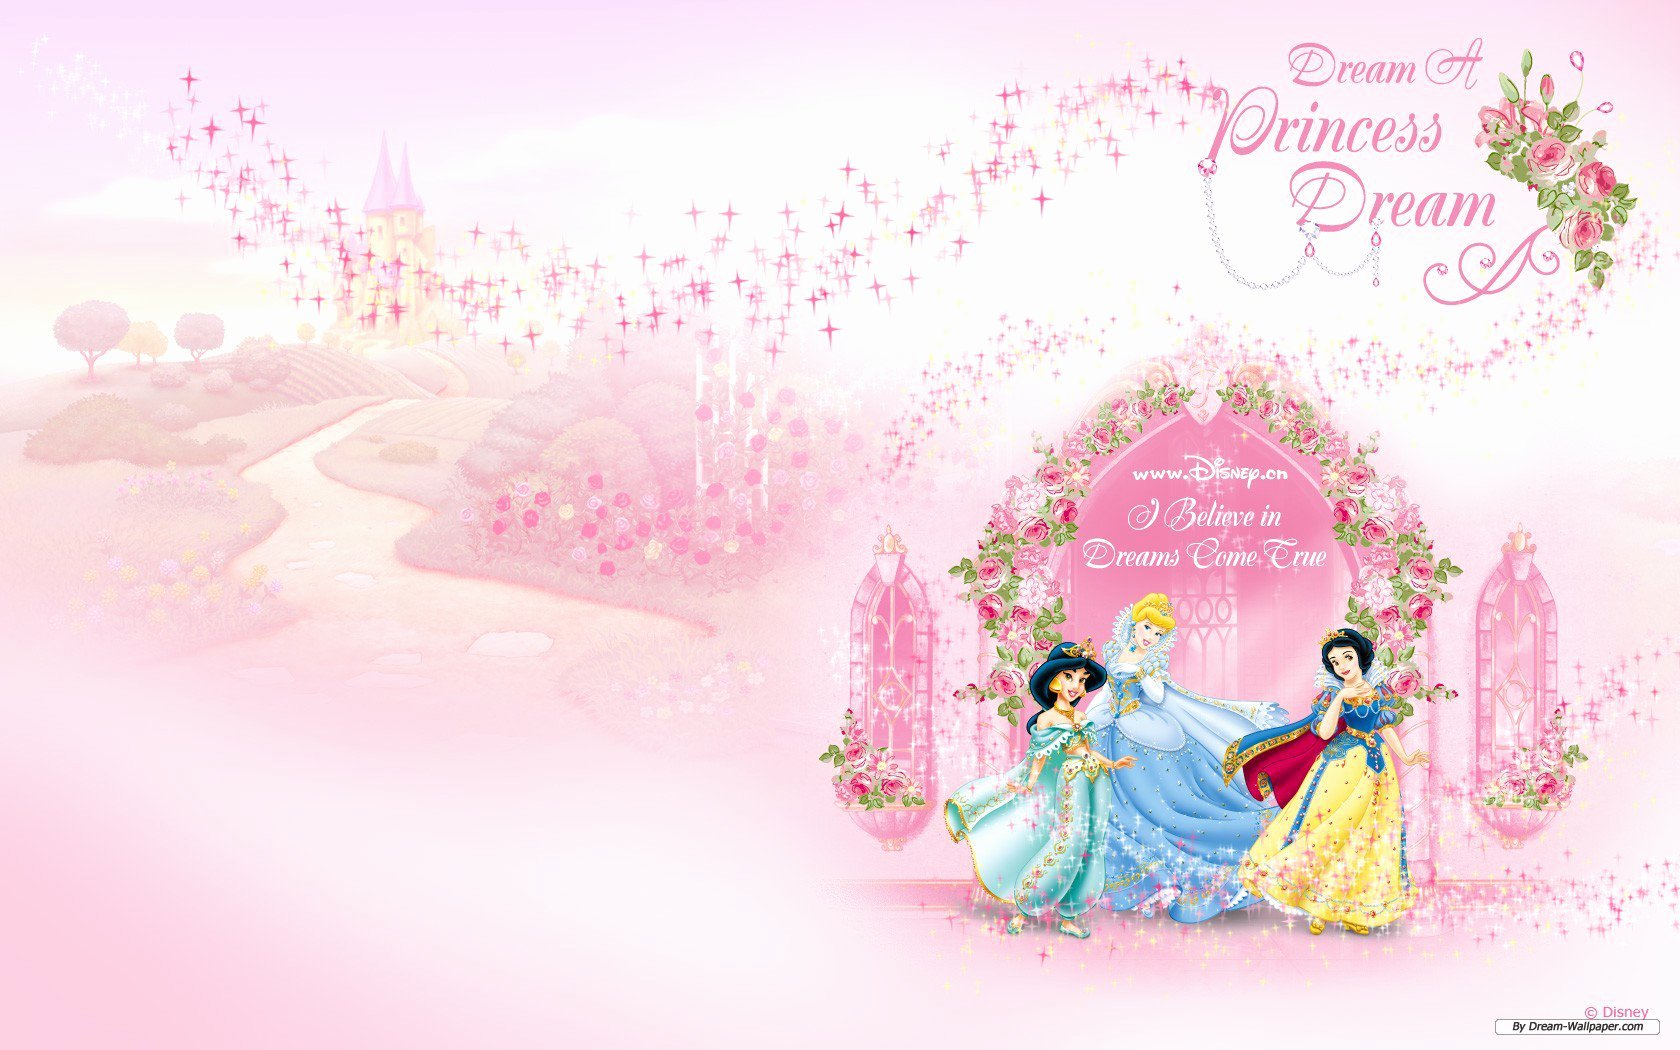 Princess Party Invitation Template Lovely Disney Princess Invitation Templates Free